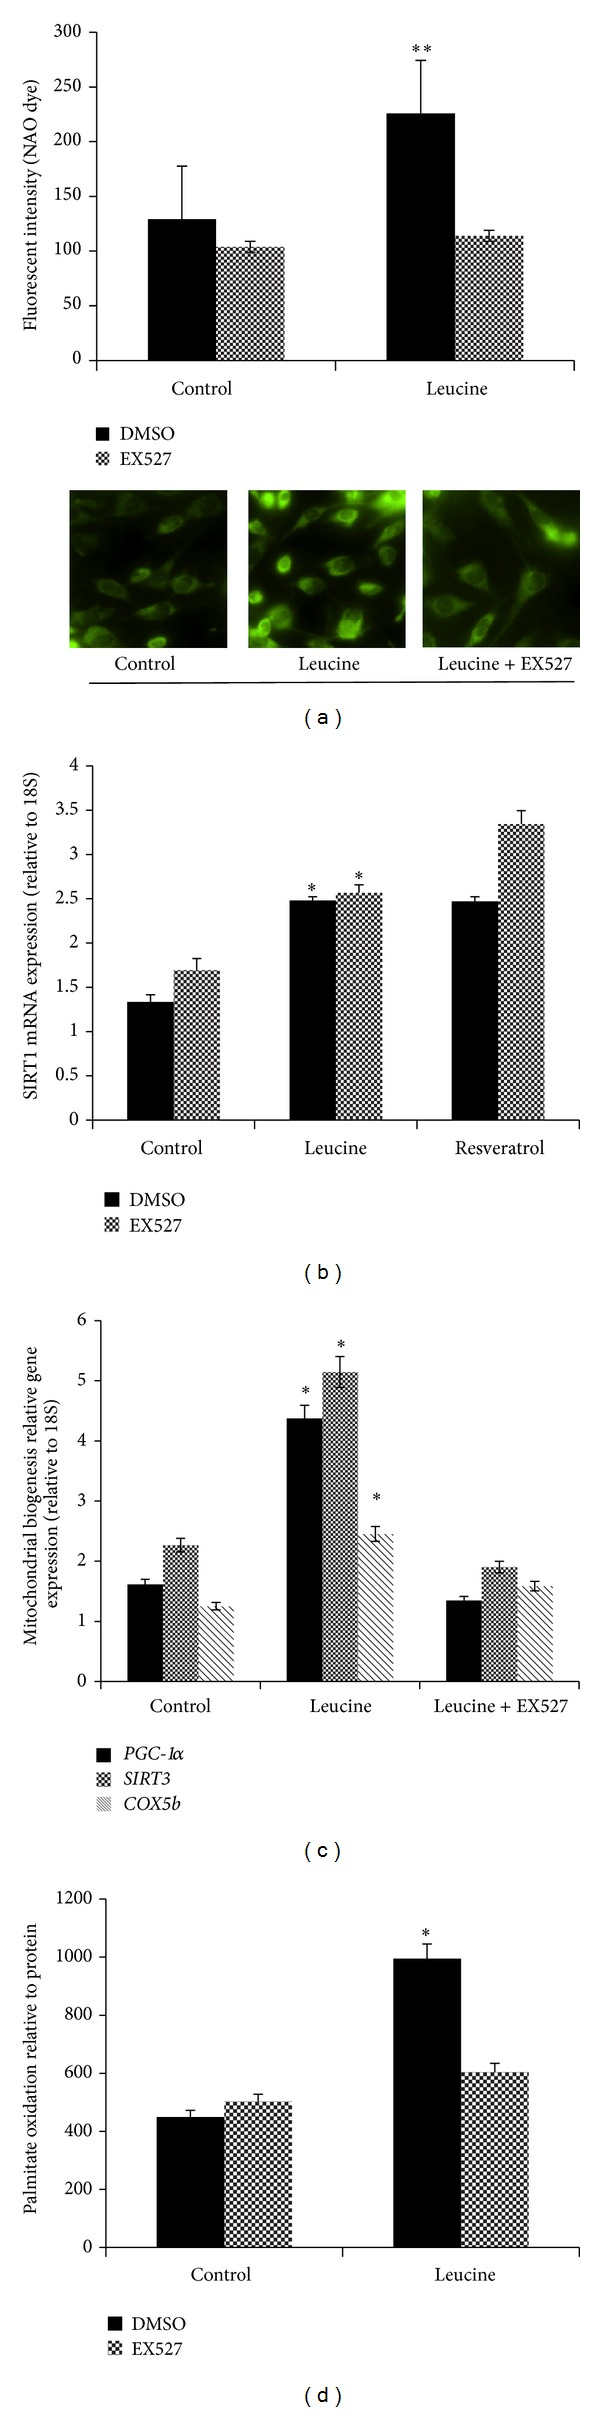 Leucine improves mitochondrial biogenesis in C2C12 myotubes in a SIRT1-dependent manner. (a) Mitochondrial content was measured using NAO (10 μ M) dye after 48-hour leucine (dark bars), leucine plus SIRT1 inhibitor (EX527 25 μ M; grey bars) for 48 hours in C2C12 myotubes. (b, c) SIRT1 activity and mitochondrial biogenesis- related genes ( PGC-1 α , Sirt3, and COX5b ) mRNA levels were measured after the same treatments. The relative SIRT1 activity was normalized to cellular protein level, and mRNA level was normalized to housekeeper gene 18S . (b) Dark bars are DMSO control, grey bars are EX527. (c) Dark bars are PGC-1α , grey bars are Sirt3 ; striped bars are COX5b . (d) Palmitate oxidation level was detected after the same treatment, and the results were normalized to cellular protein for each sample. Data are mean ± SE ( n = 4). Different letters indicate significant differences within a given variable. Dark bars are DMSO control and grey bars are EX527. *Significantly different from controls, and **significantly different from control and EX527 groups with P